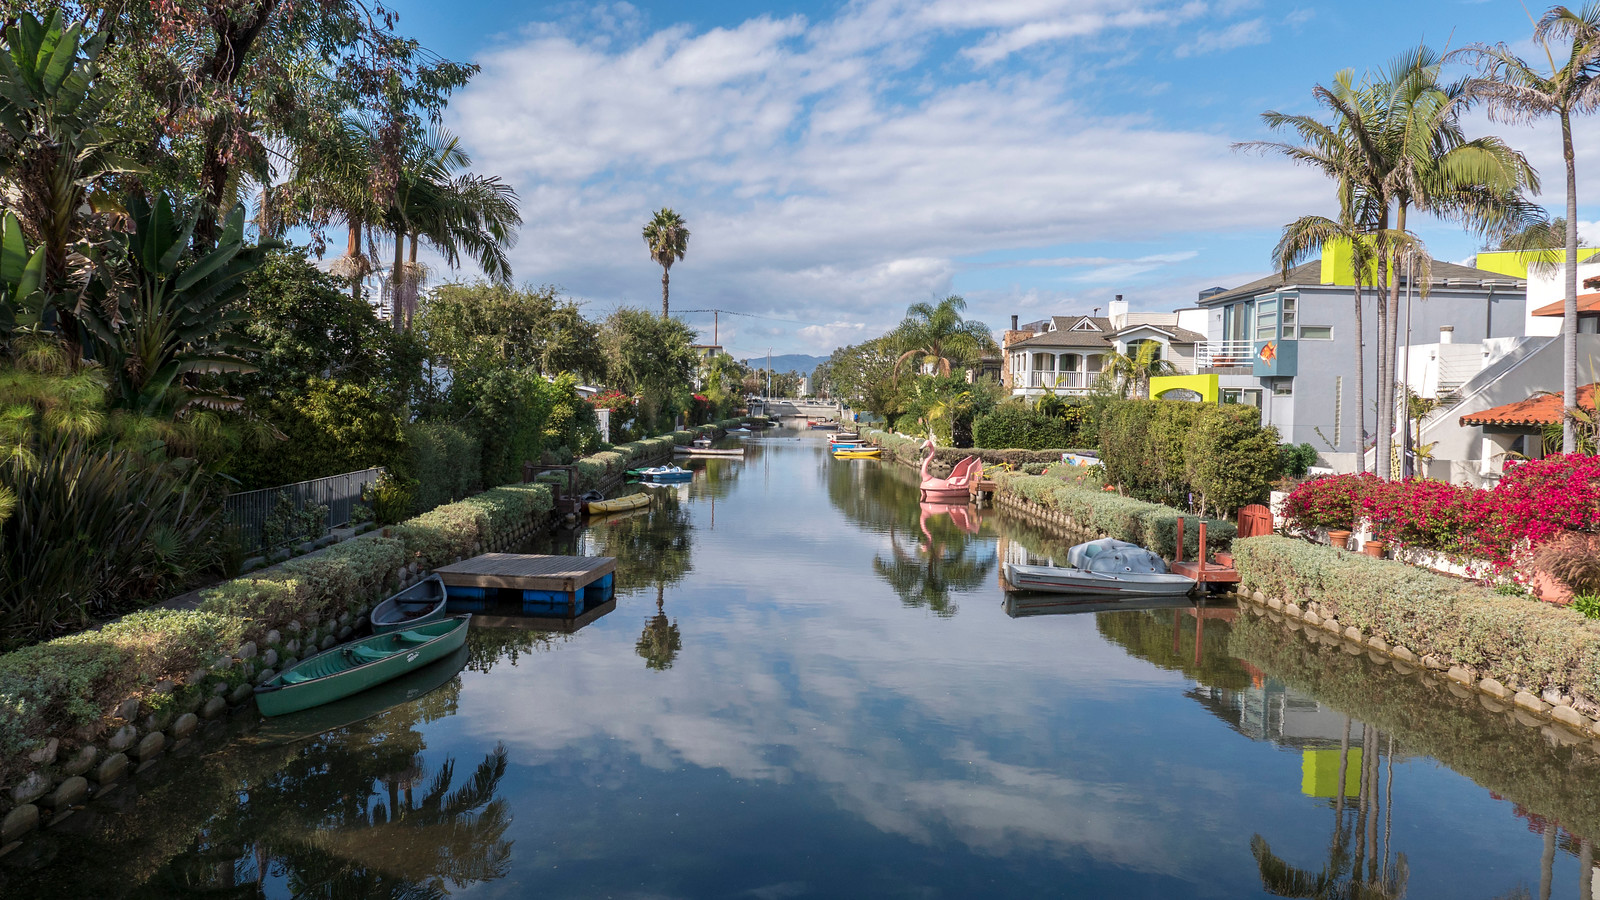 Venice Canals - 2 Days in Los Angeles Itinerary for First Timers